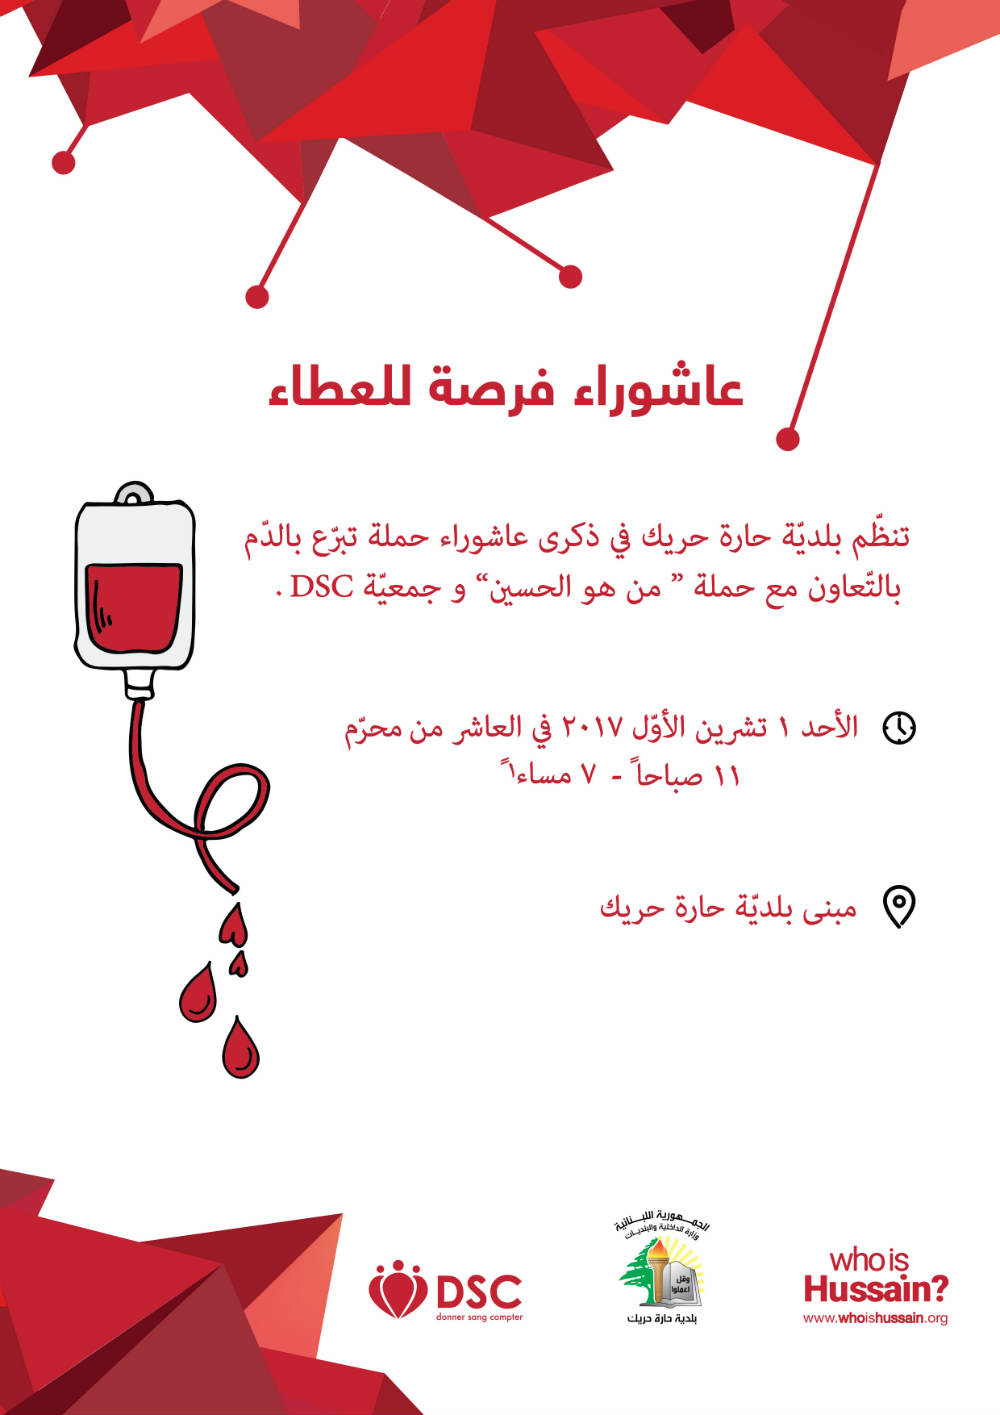 Ashoura blood donation campaign by who is hussain blog baladi in addition to the blood donation campaign who is hussain as part of their 10 days of kindness campaign distributed winter clothes and hot home made altavistaventures Choice Image